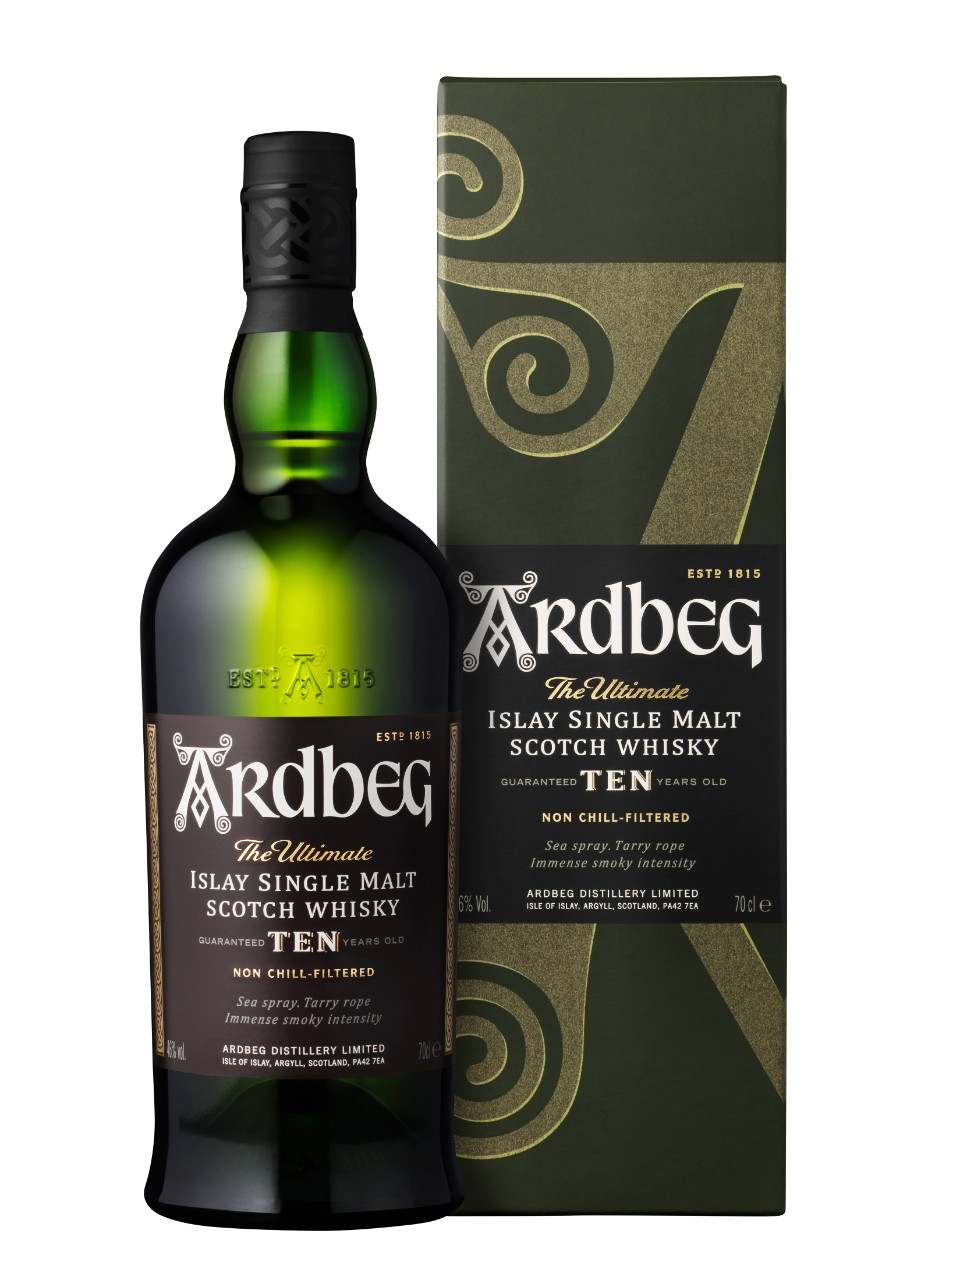 Ardbeg 10 Year Old Islay Scotch Whisky from LCBO